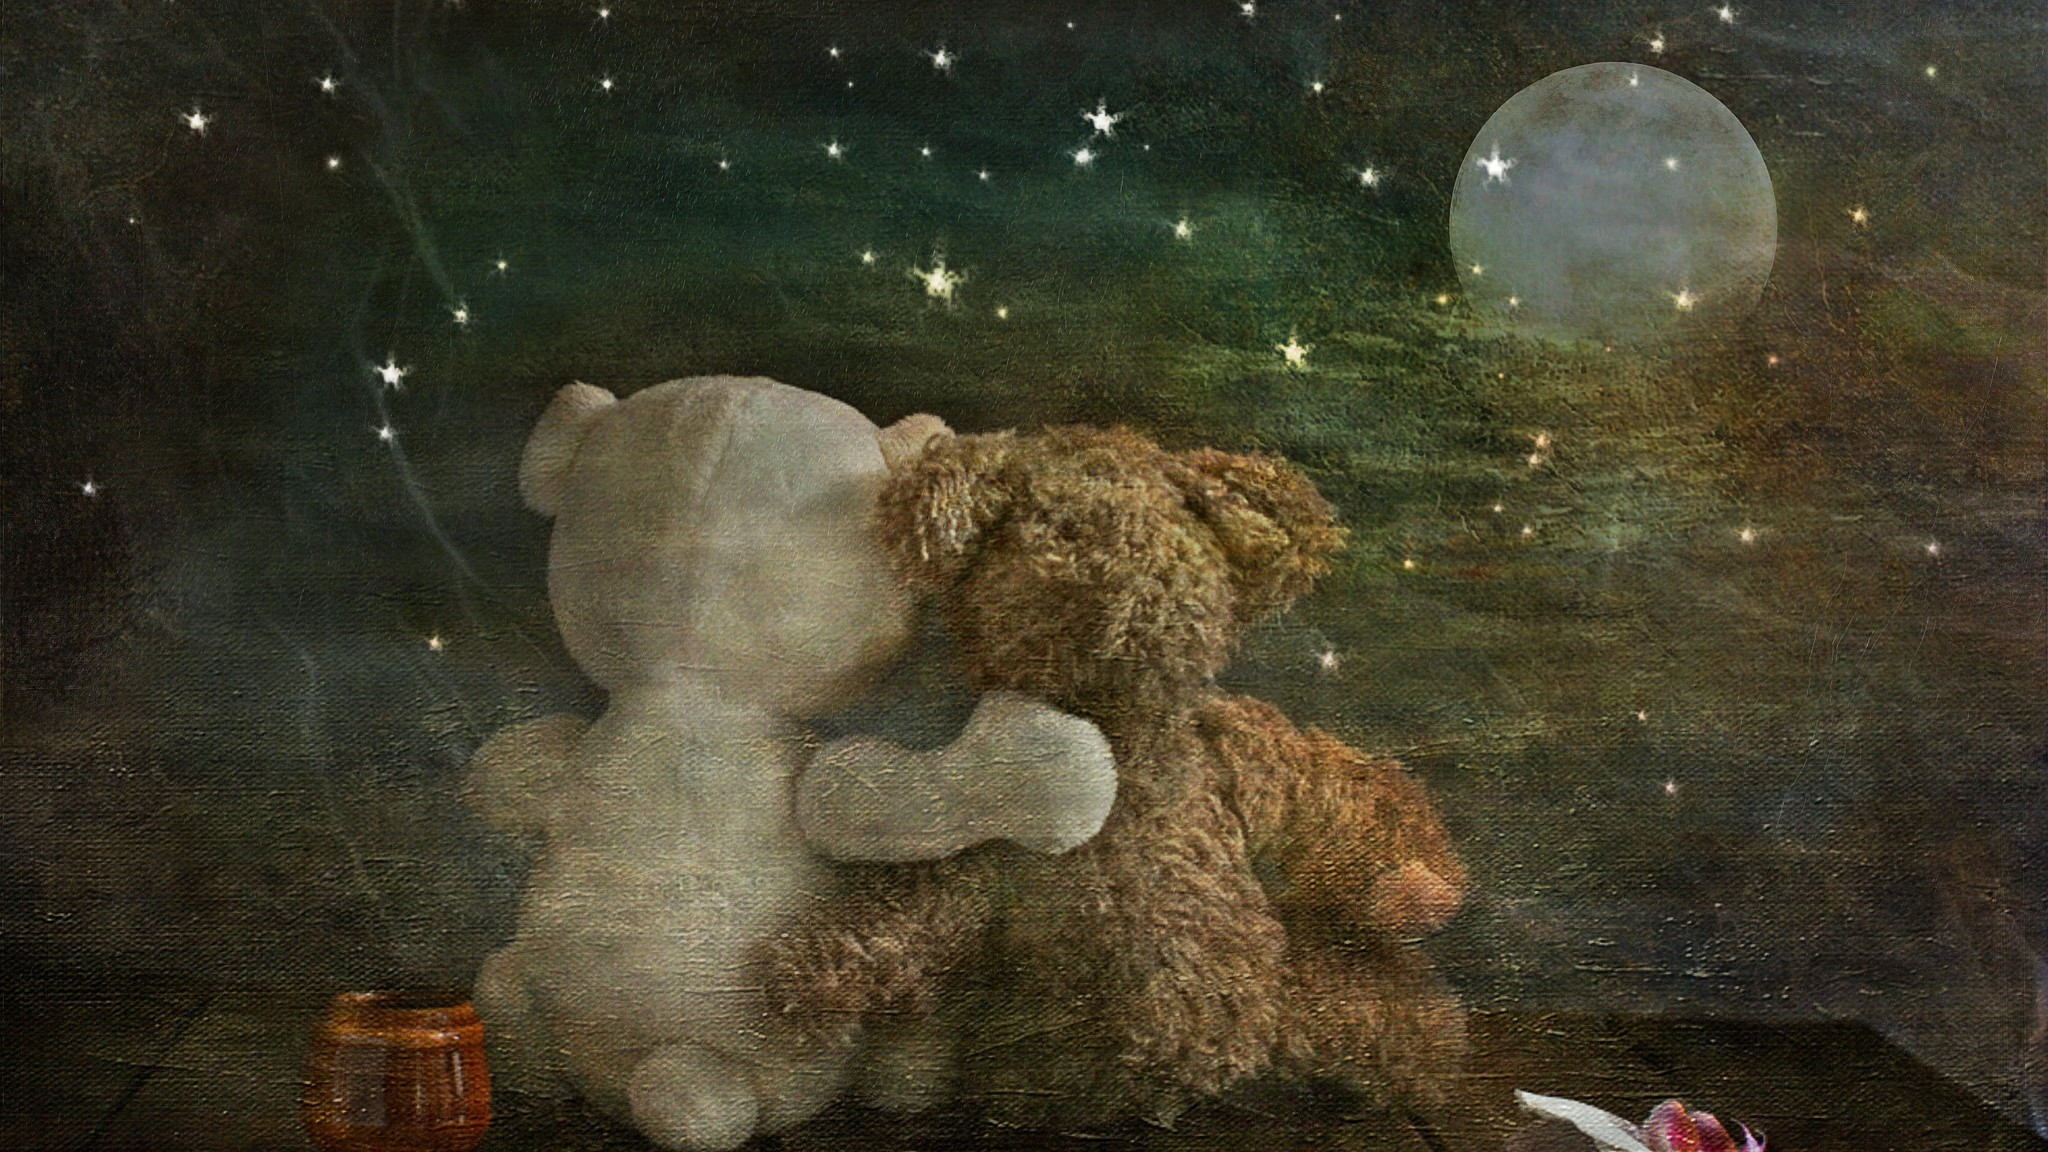 Romantic Teddy Bears Wallpaper Allwallpaper In 6874